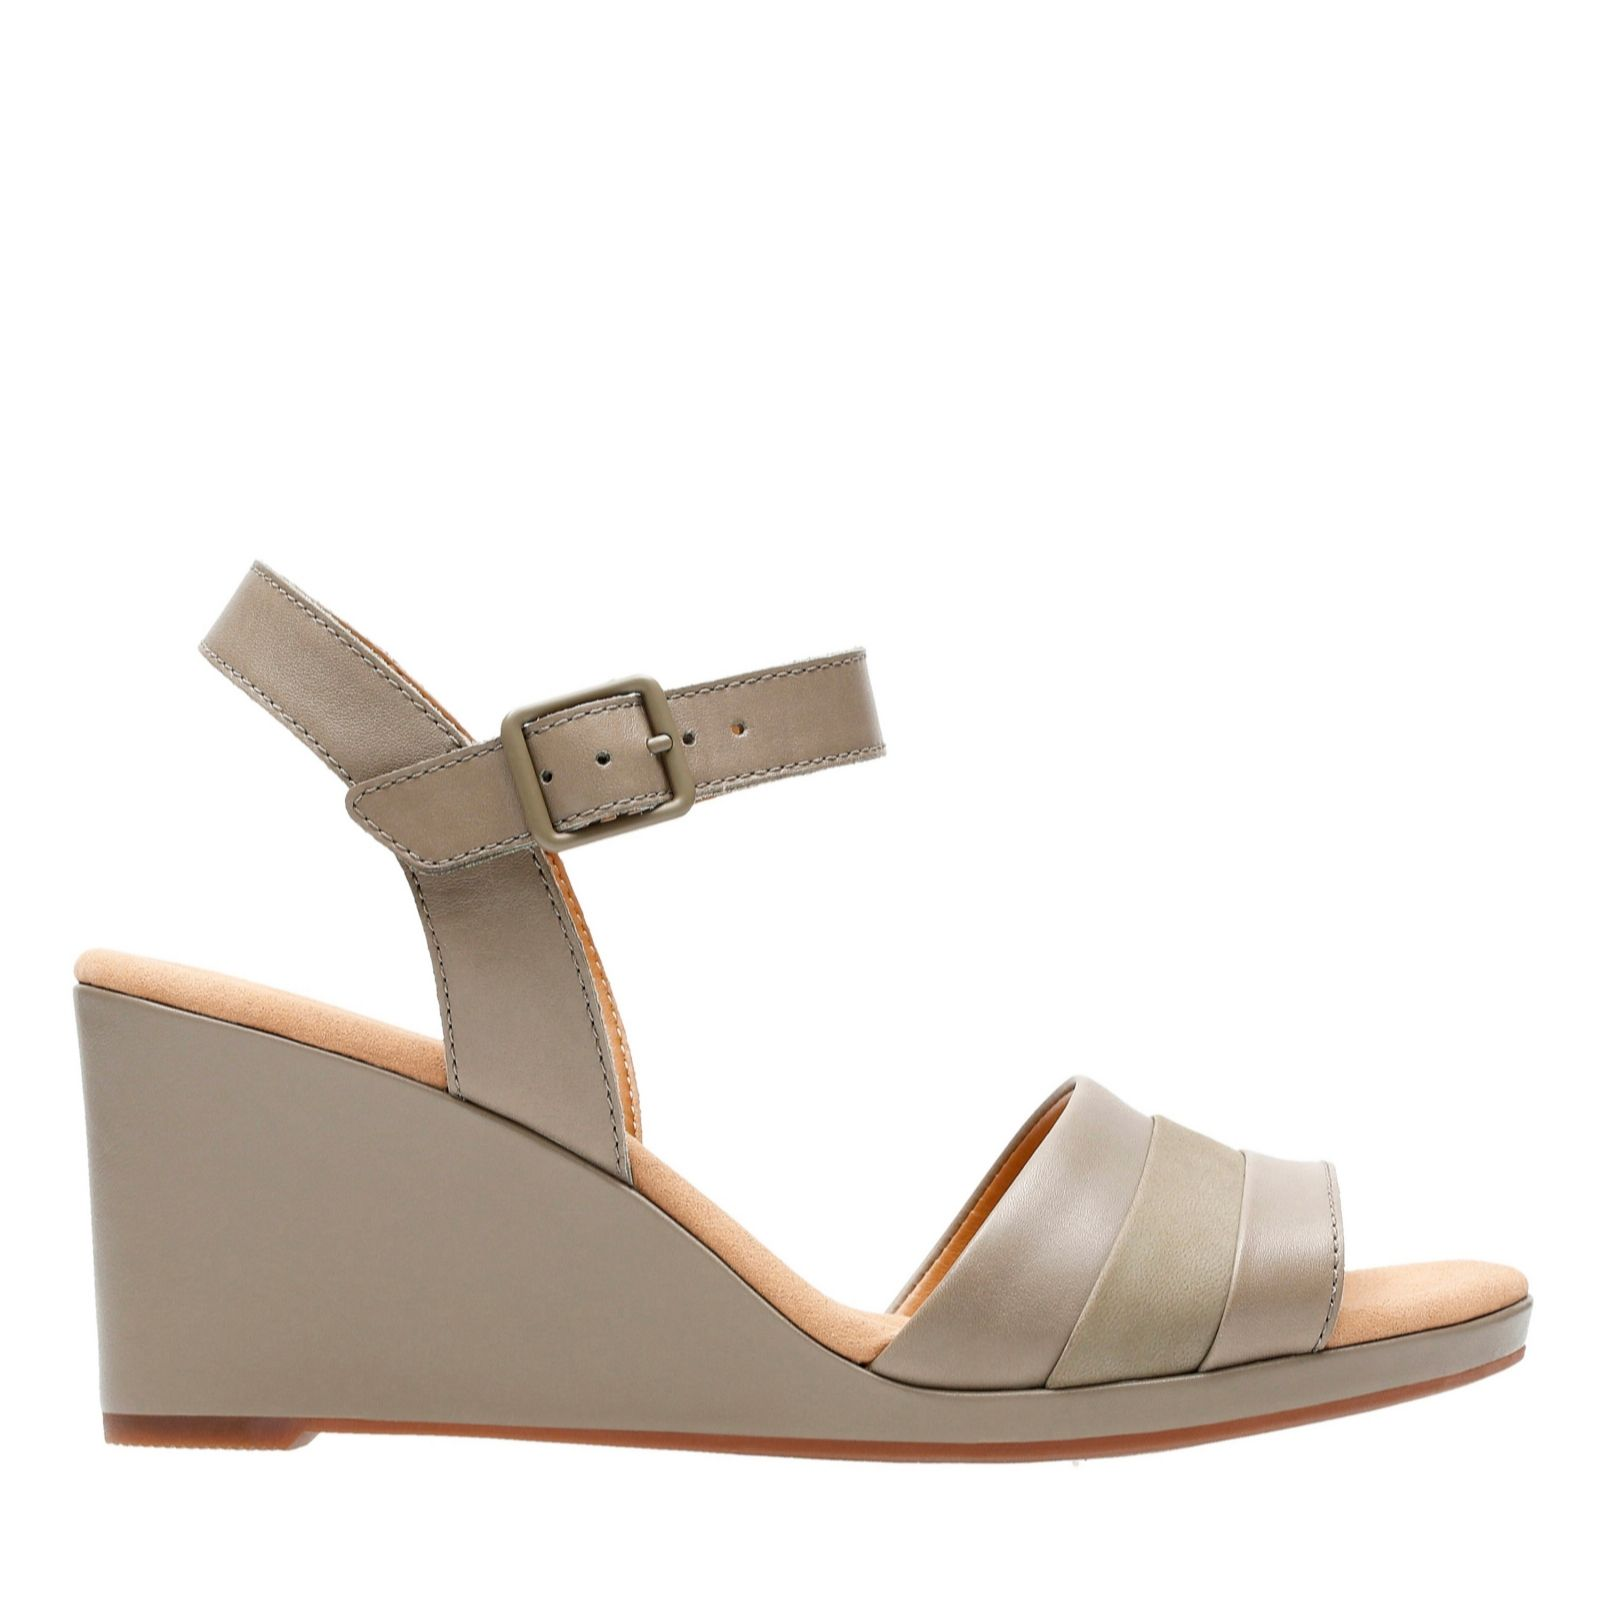 4460f0bea7c Clarks Lafley Aletha Leather Sandal with Wedge Heel Standard Fit - QVC UK